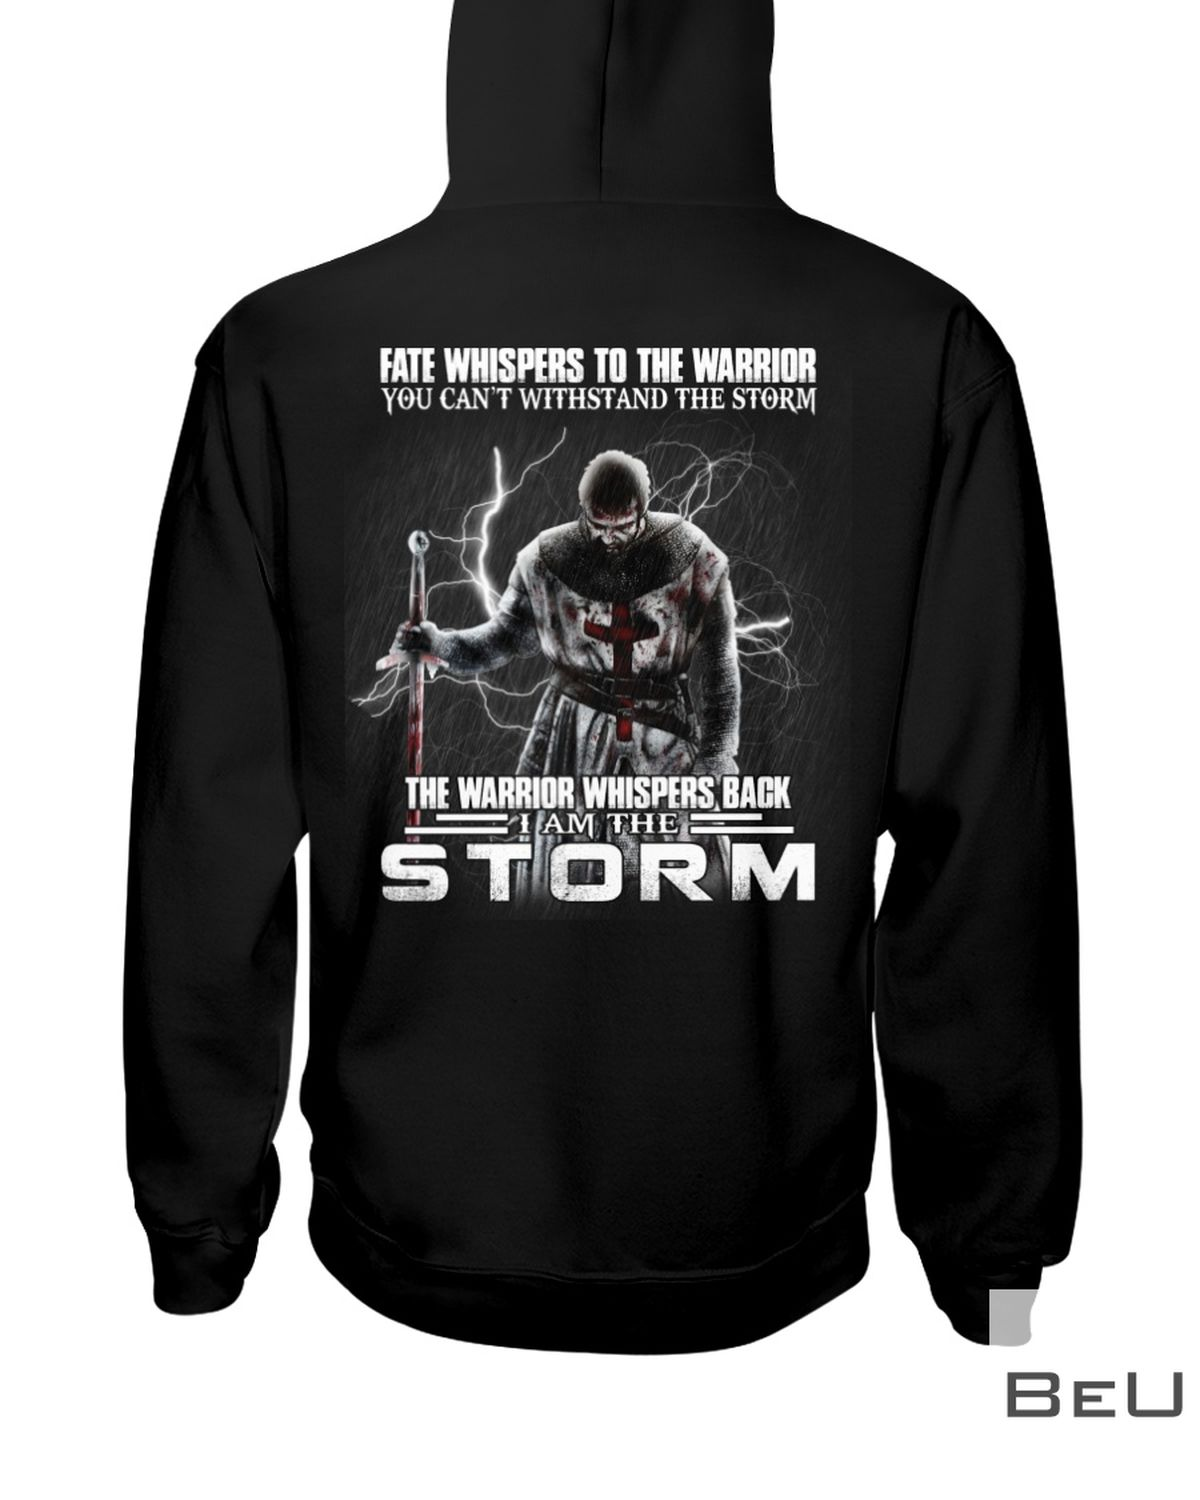 Fate Whispers To The Warrior You Can't Withstand The Storm Shirtz